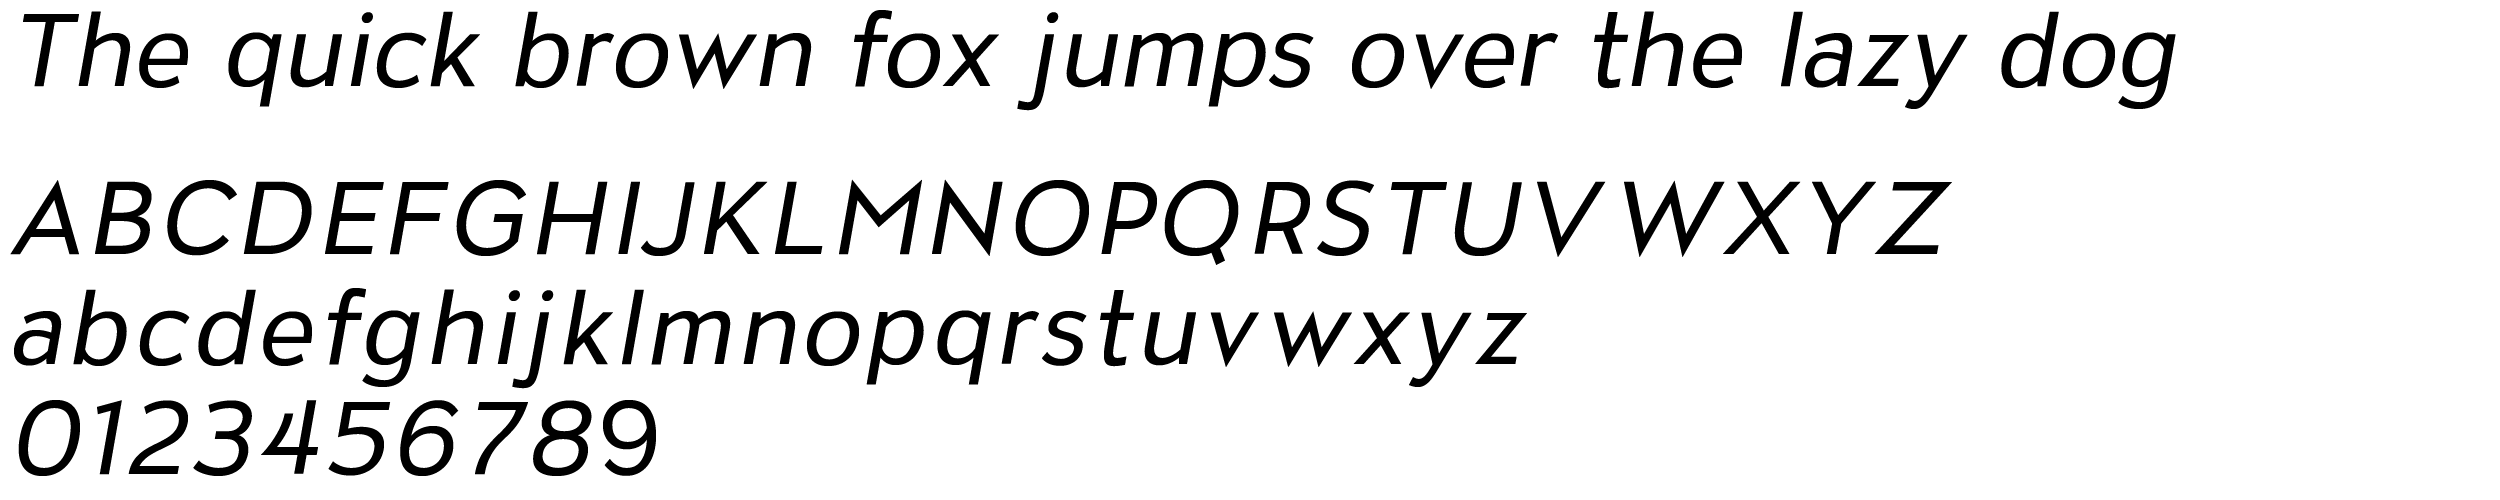 ATC Overlook Regular Italic